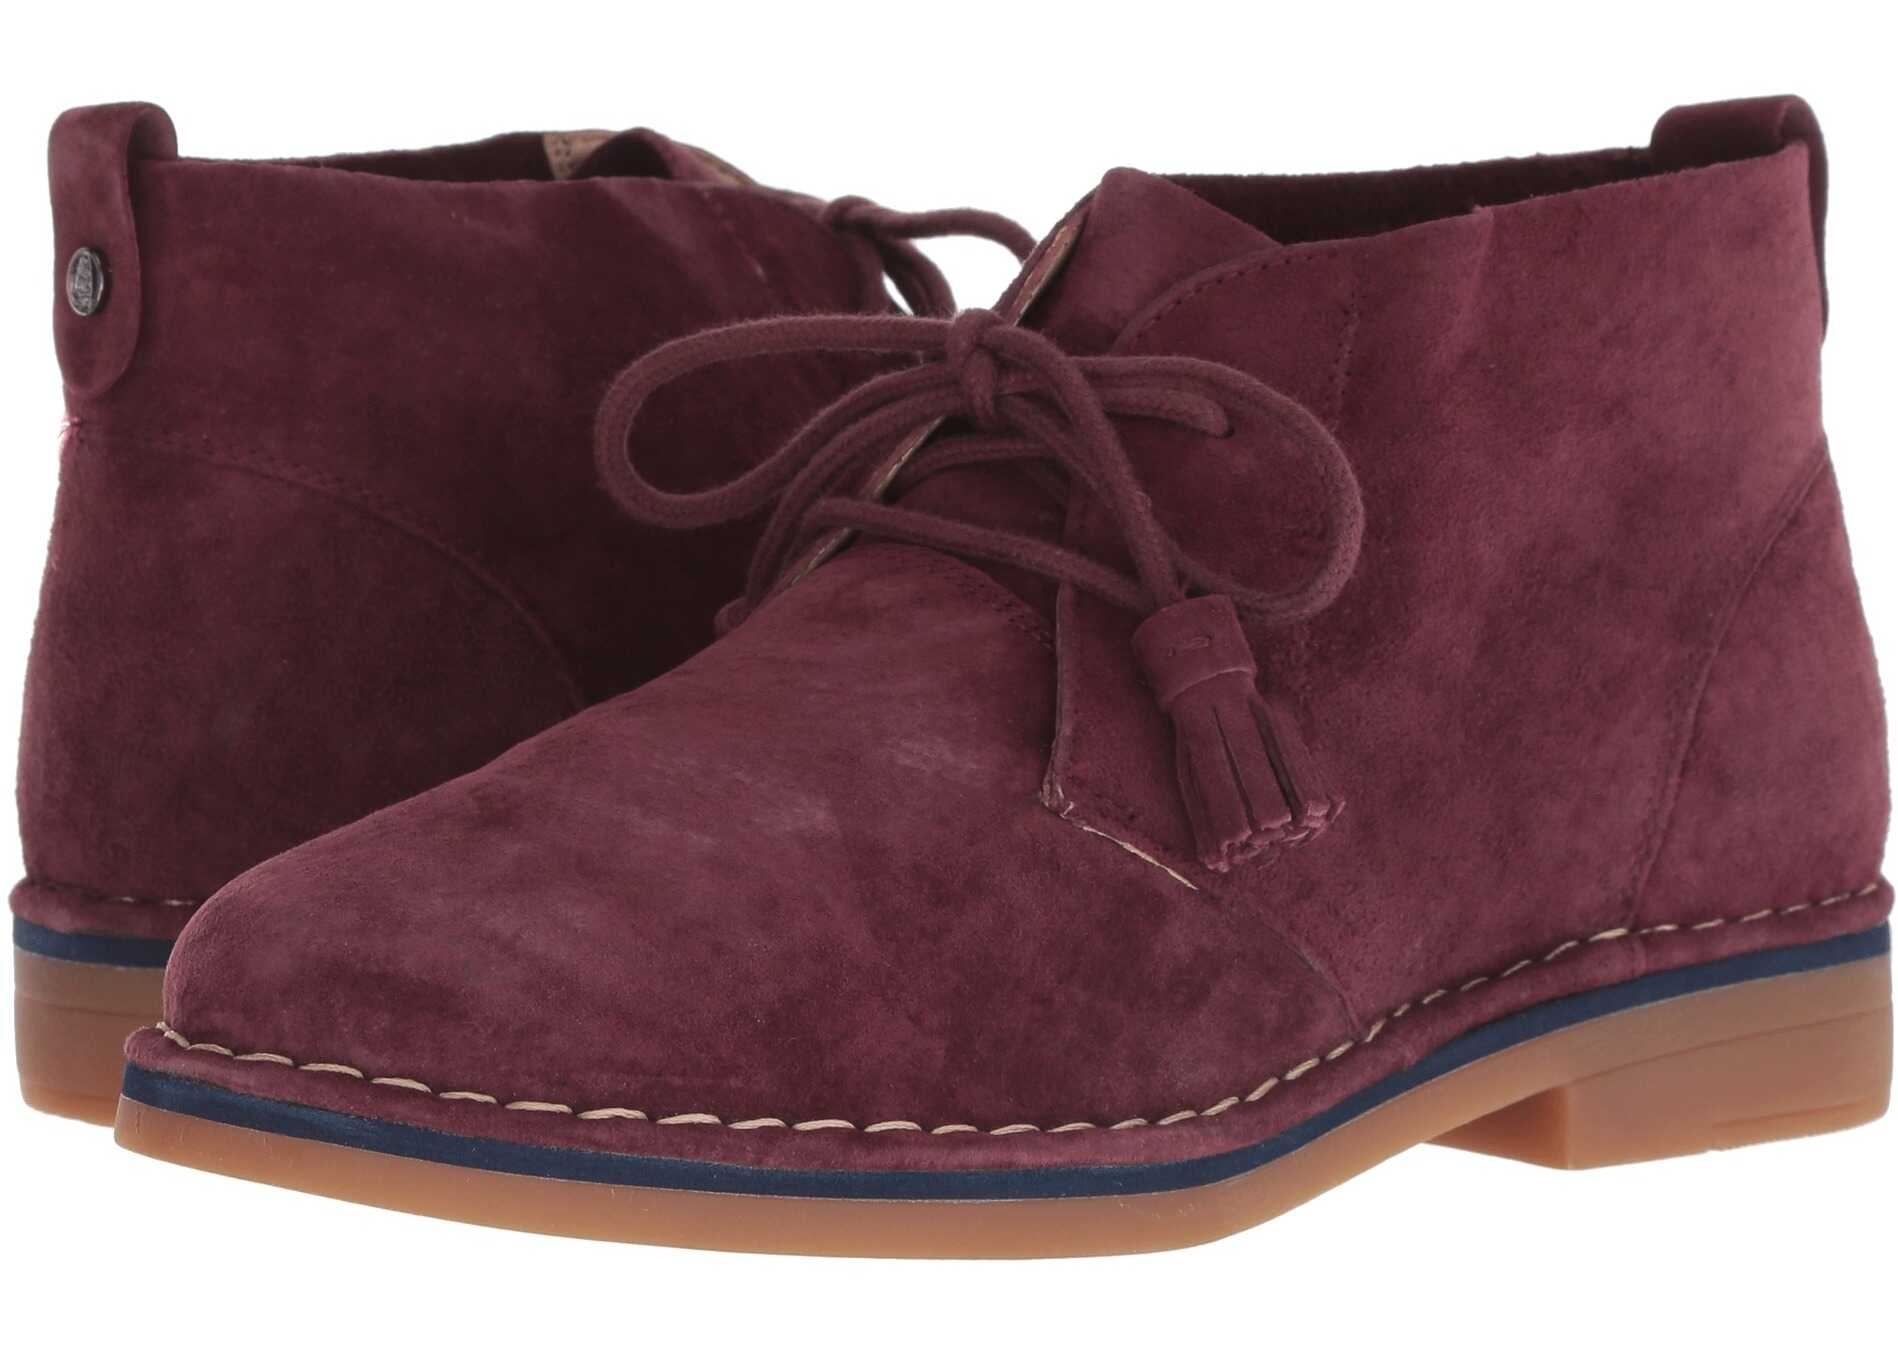 Hush Puppies Cyra Catelyn Dark Wine Suede